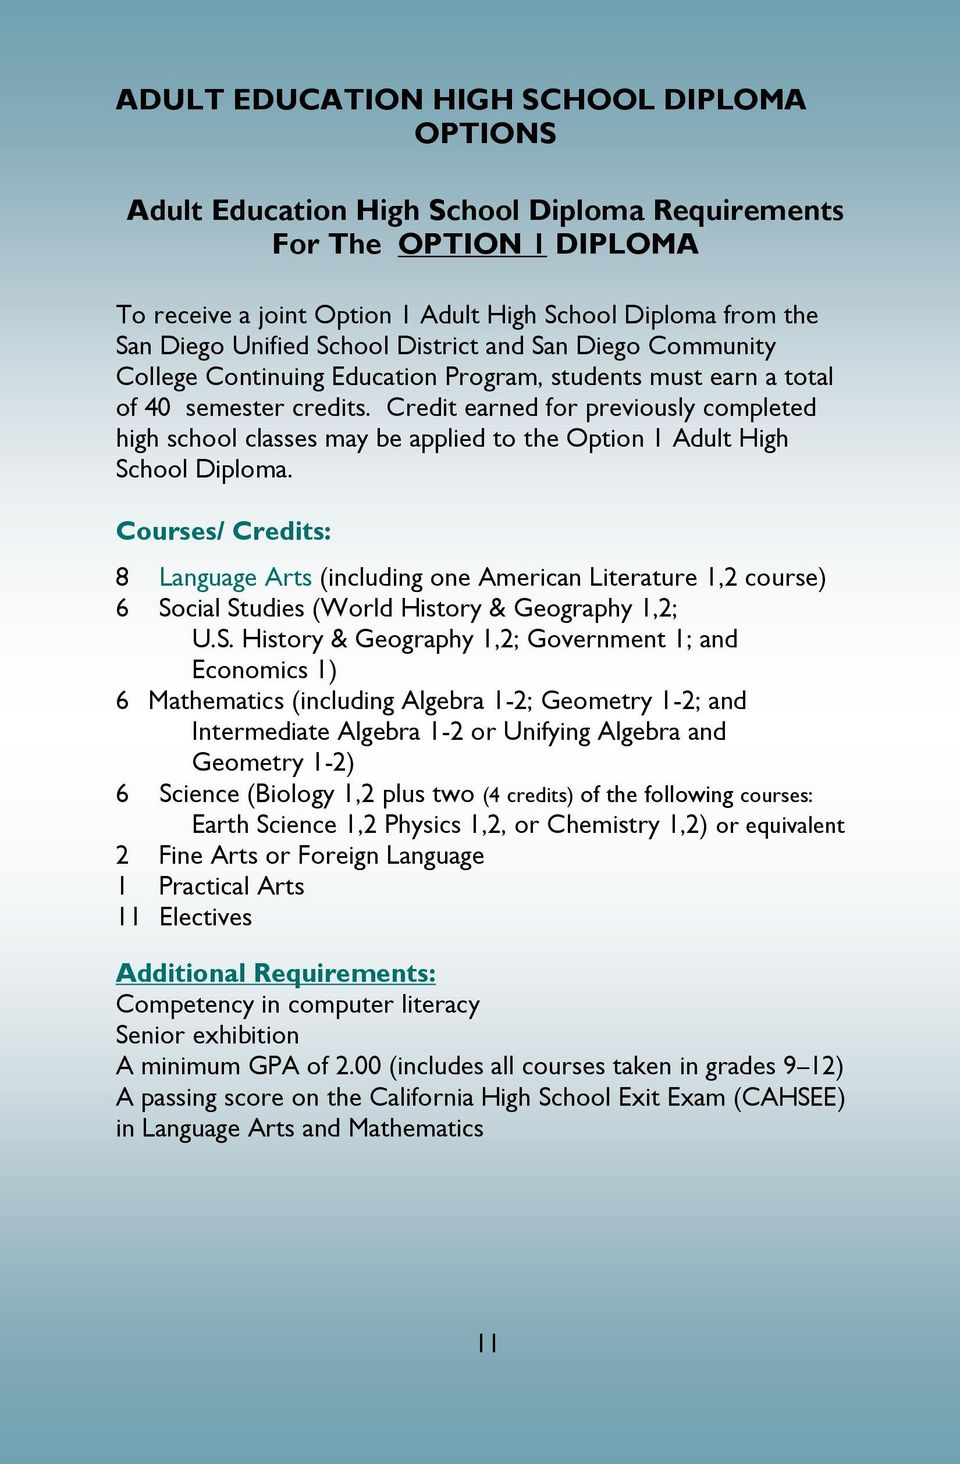 Credit earned for previously completed high school classes may be applied to the Option 1 Adult High School Diploma.